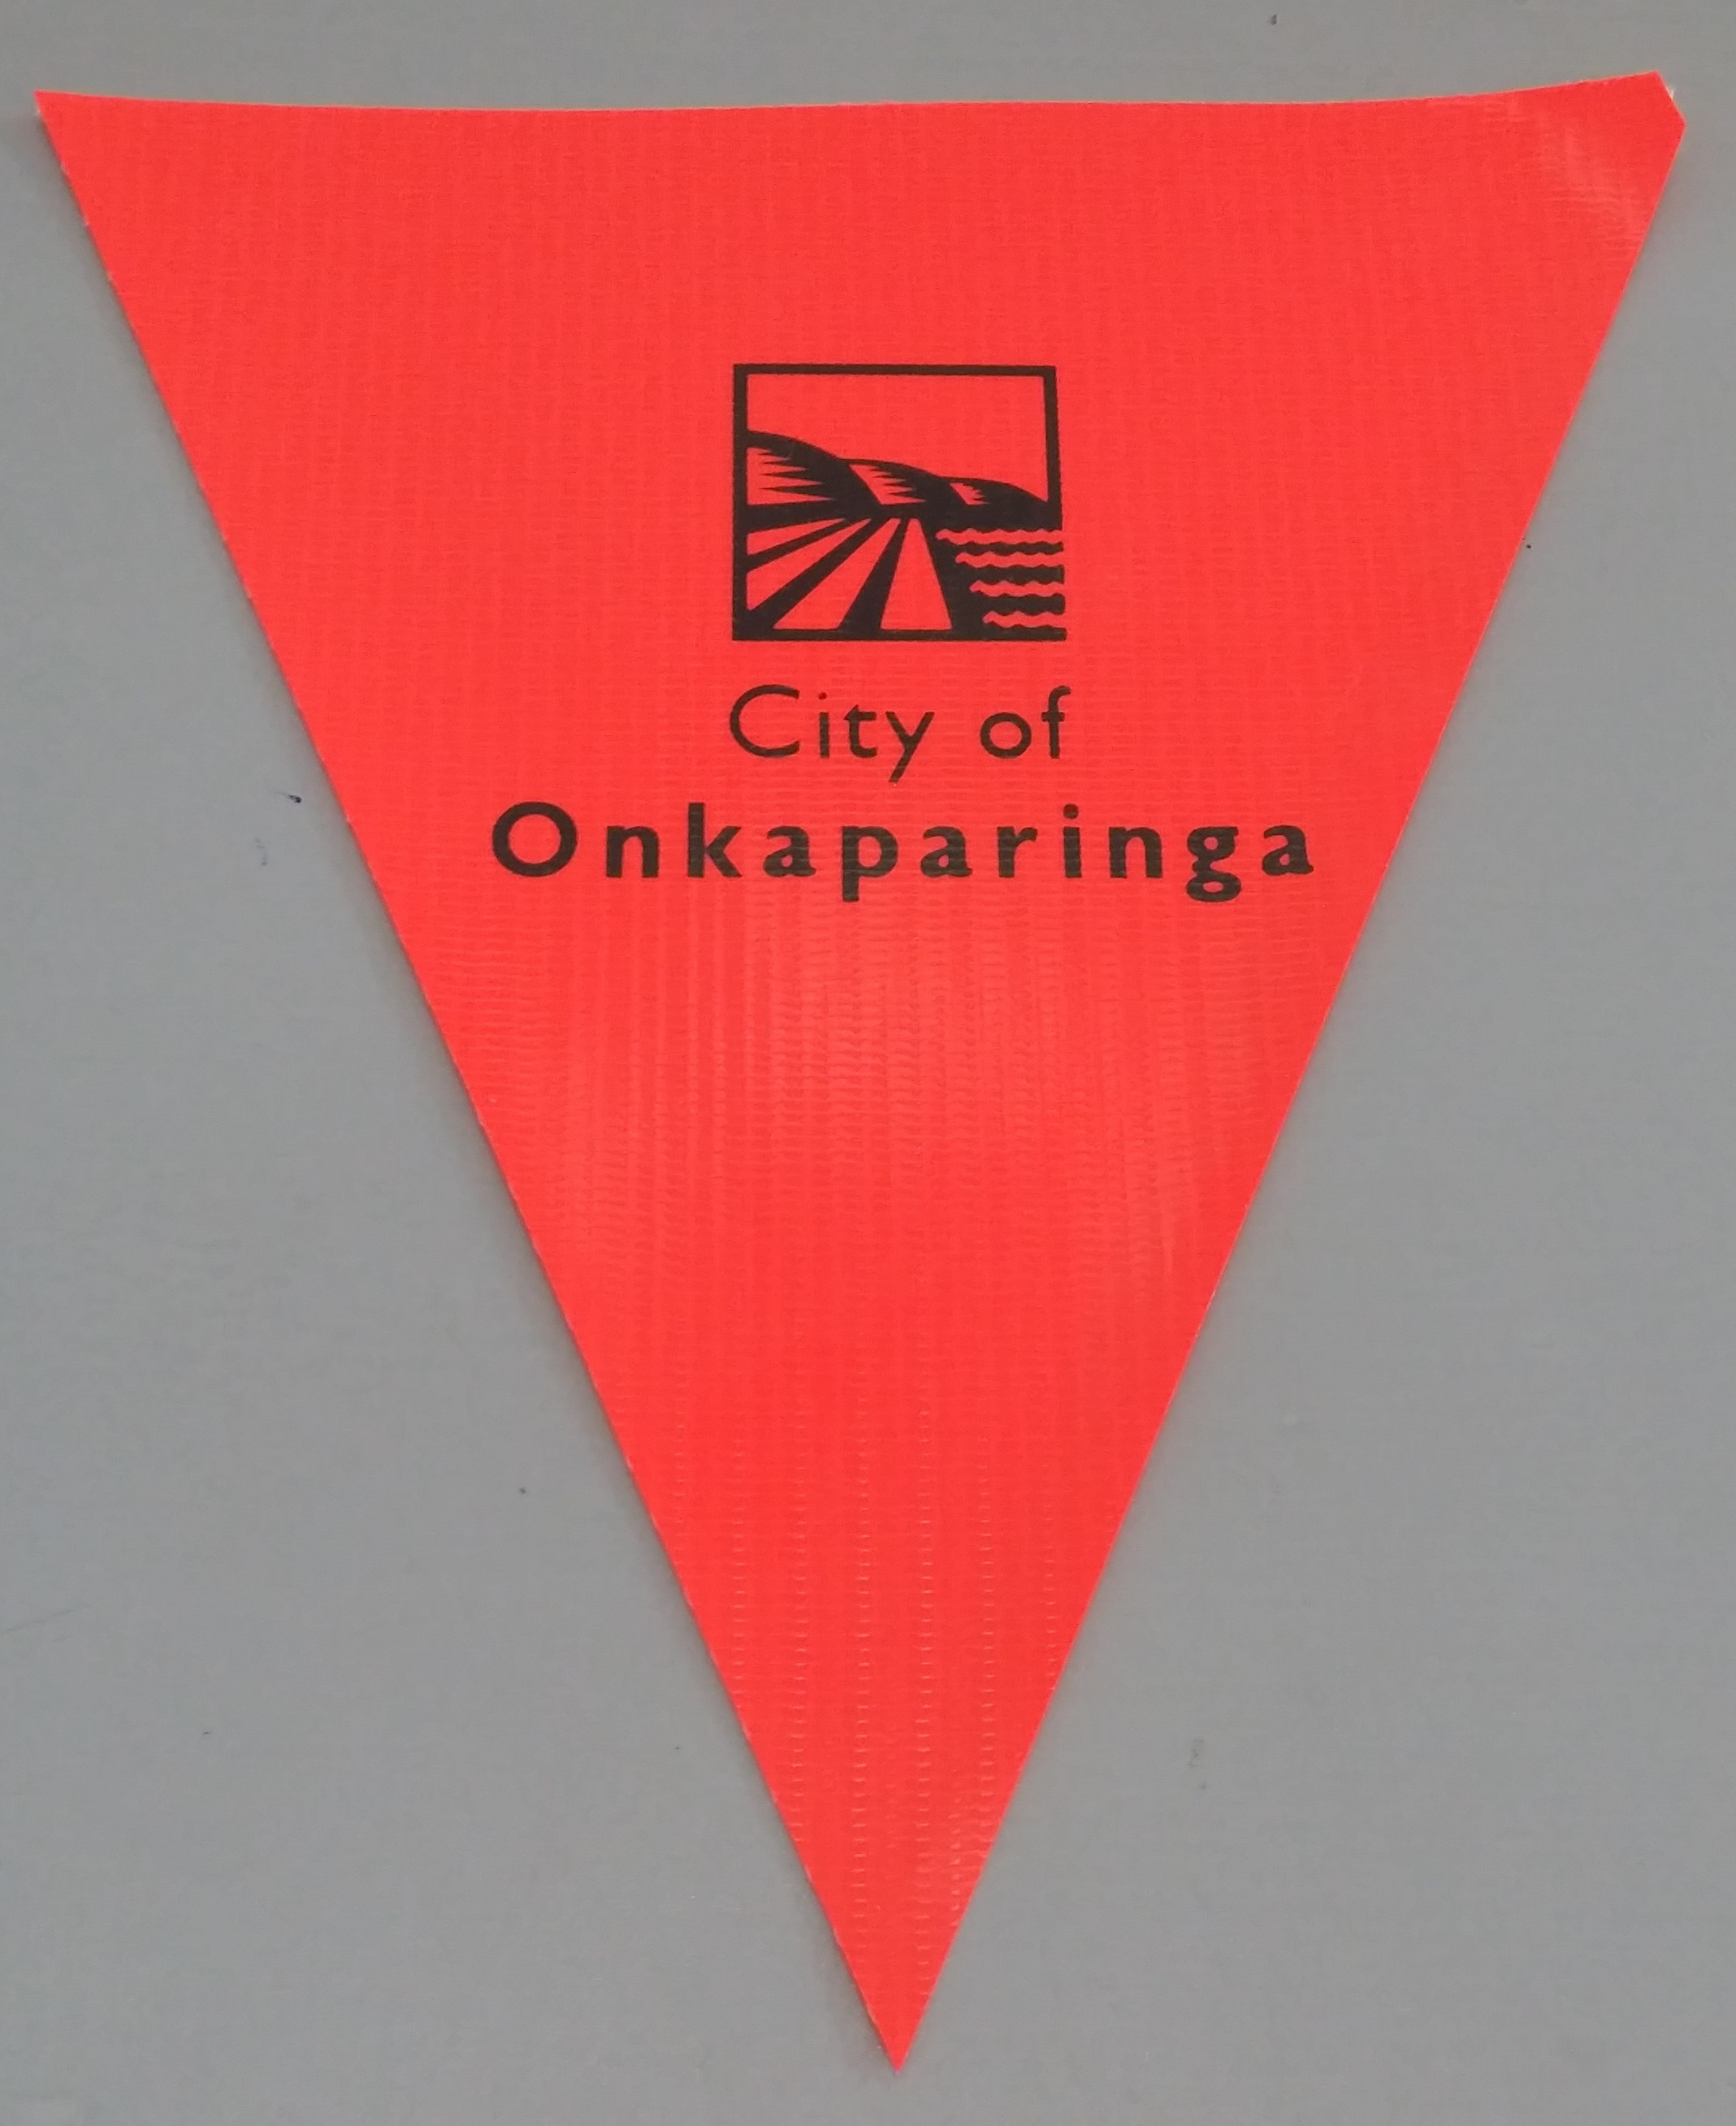 City of Onkaparinga (orange)